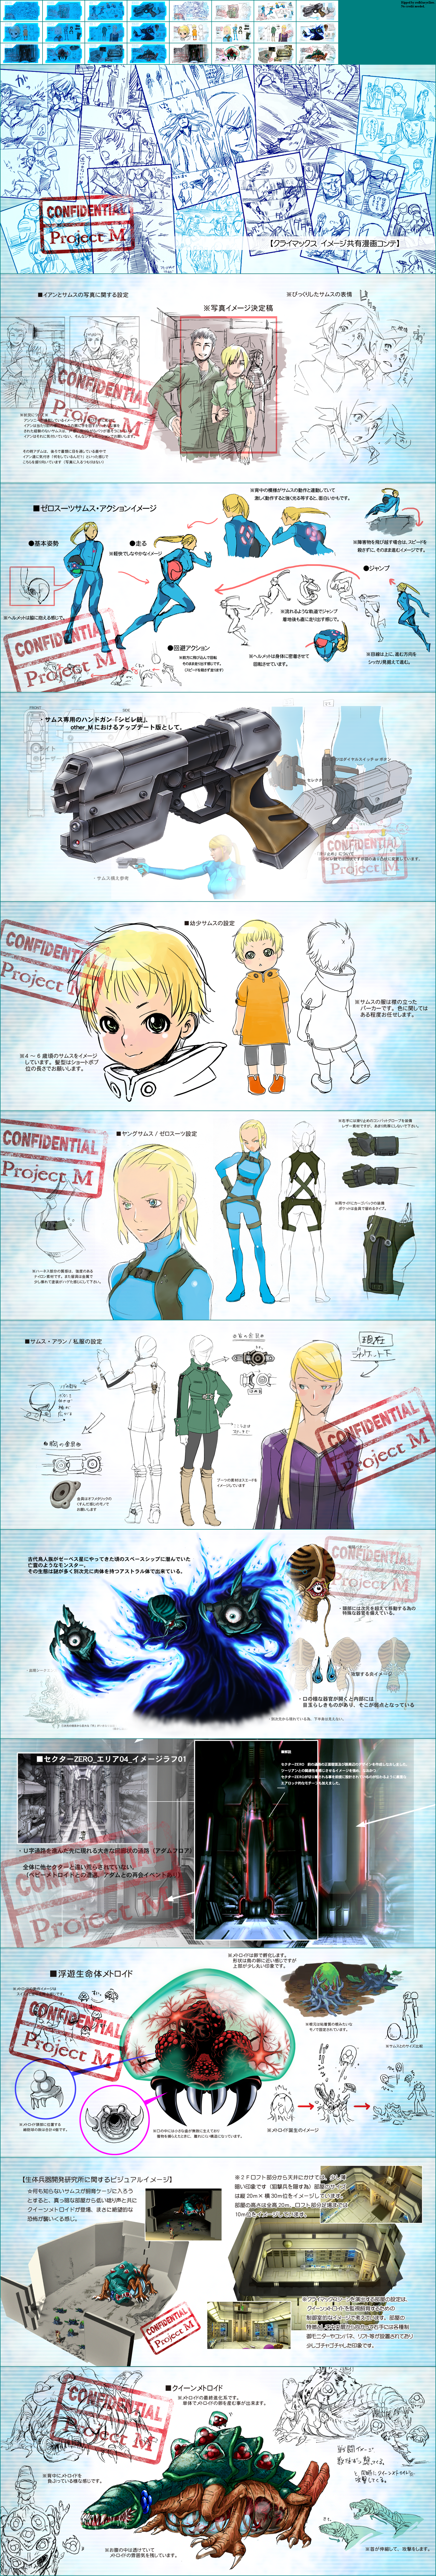 Metroid: Other M - Gallery (Page 8)